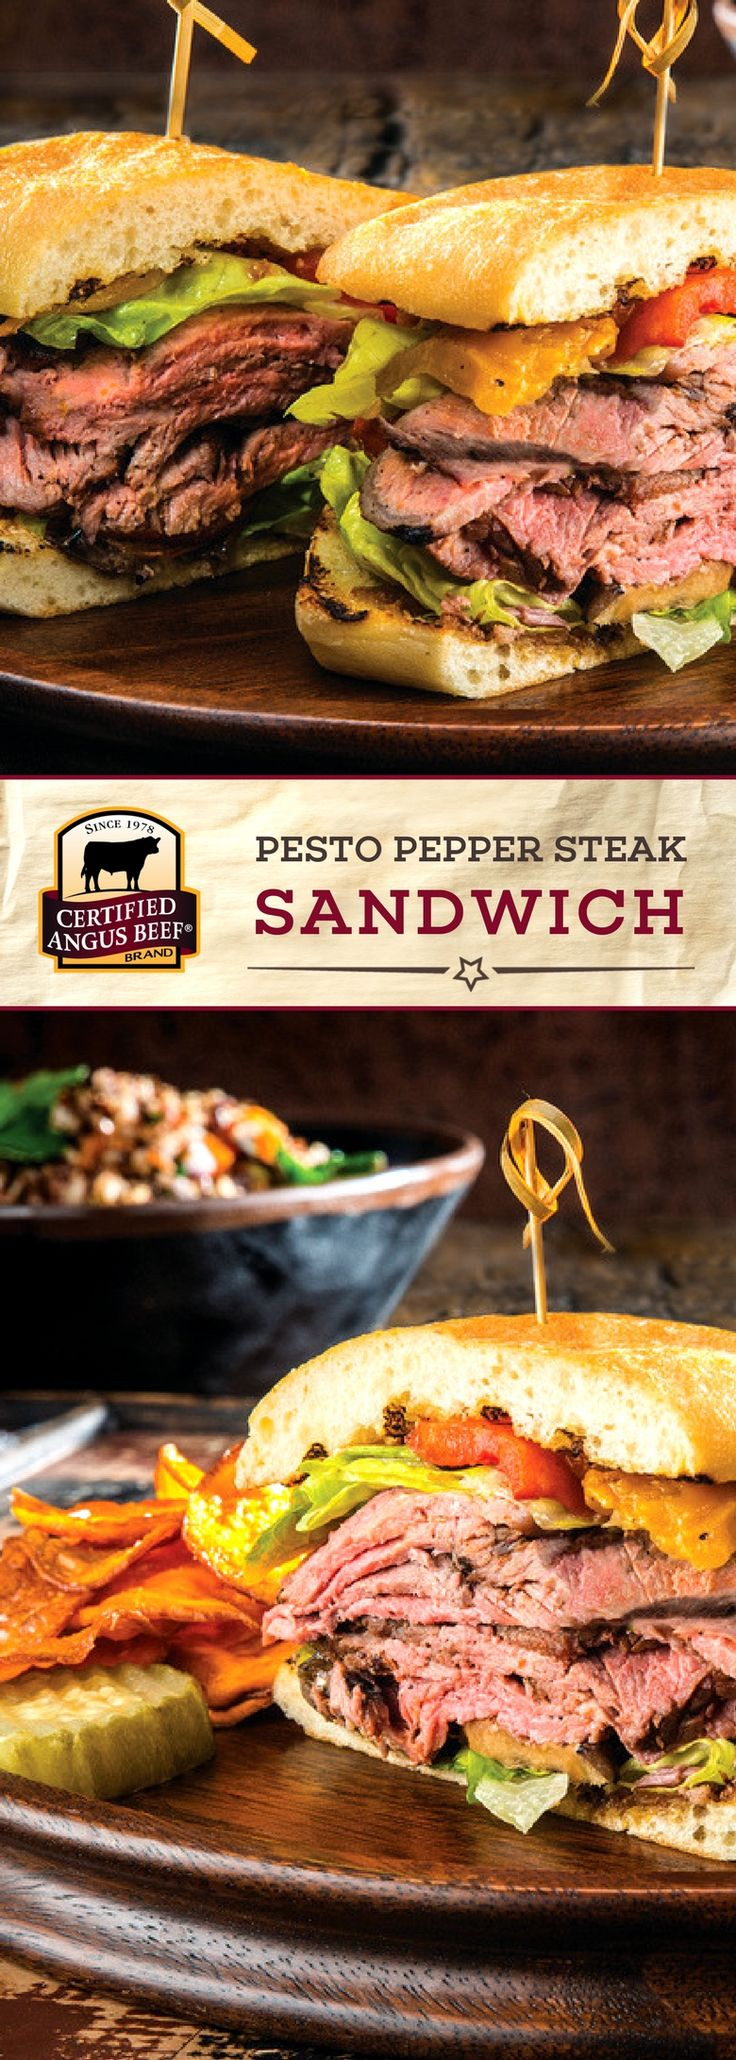 Certified Angus Beef®️ brand Pesto Pepper Steak Sandwich is a SHOW STOPPER of a sandwich! The best strip roast is brushed with olive oil and generously seasoned, then thinly sliced along with eggplant, roasted red peppers, goat or cream cheese, and a TASTY fig spread! Put it all on a ciabatta or hoagie bun for an UNBEATABLE sandwich recipe.